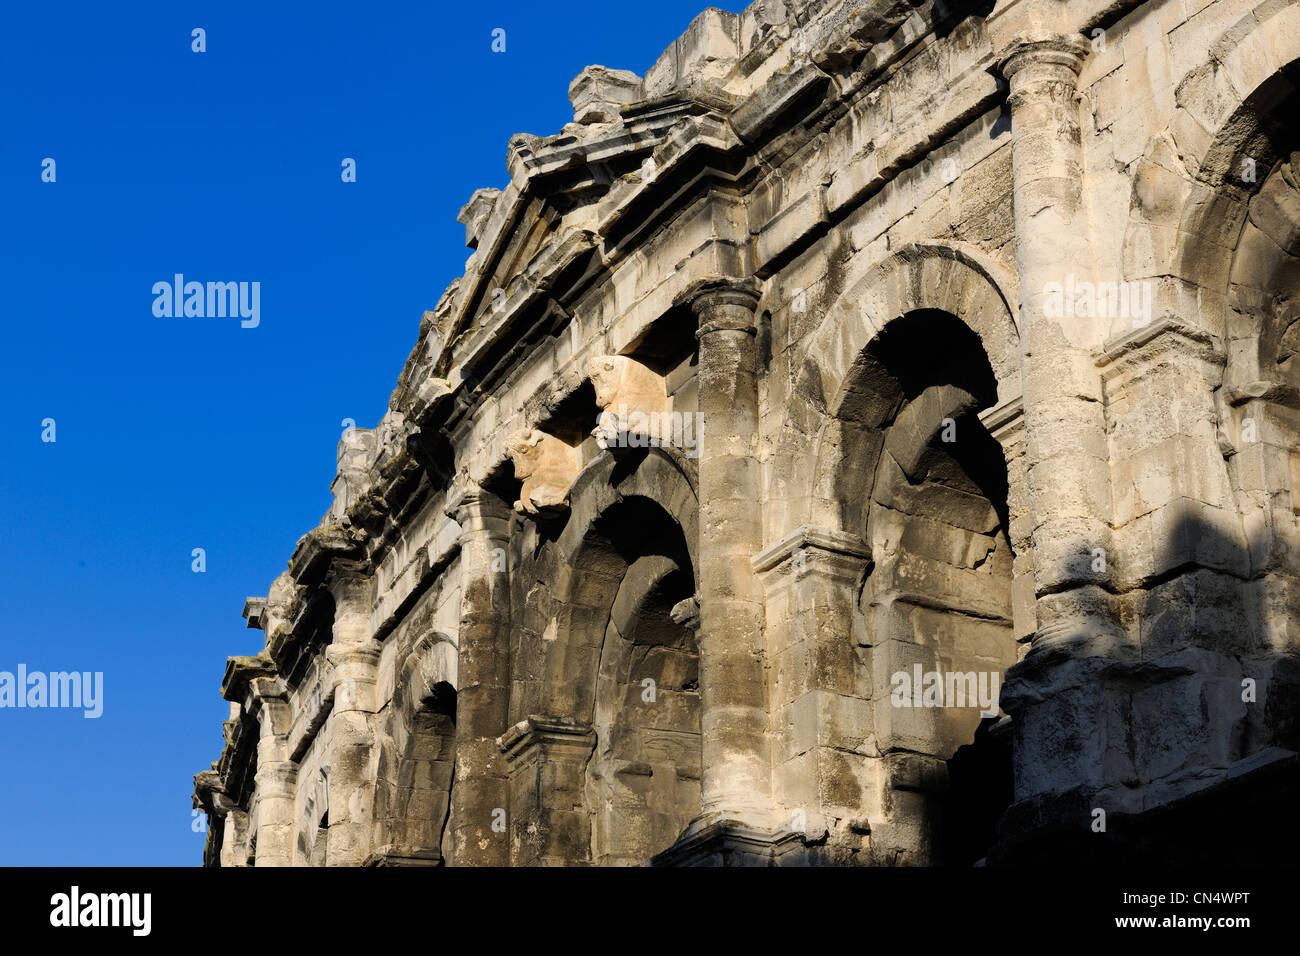 France, Gard, Nimes, the arenas, pediment ornamented with bulls over the main of the four axial gates Stock Photo